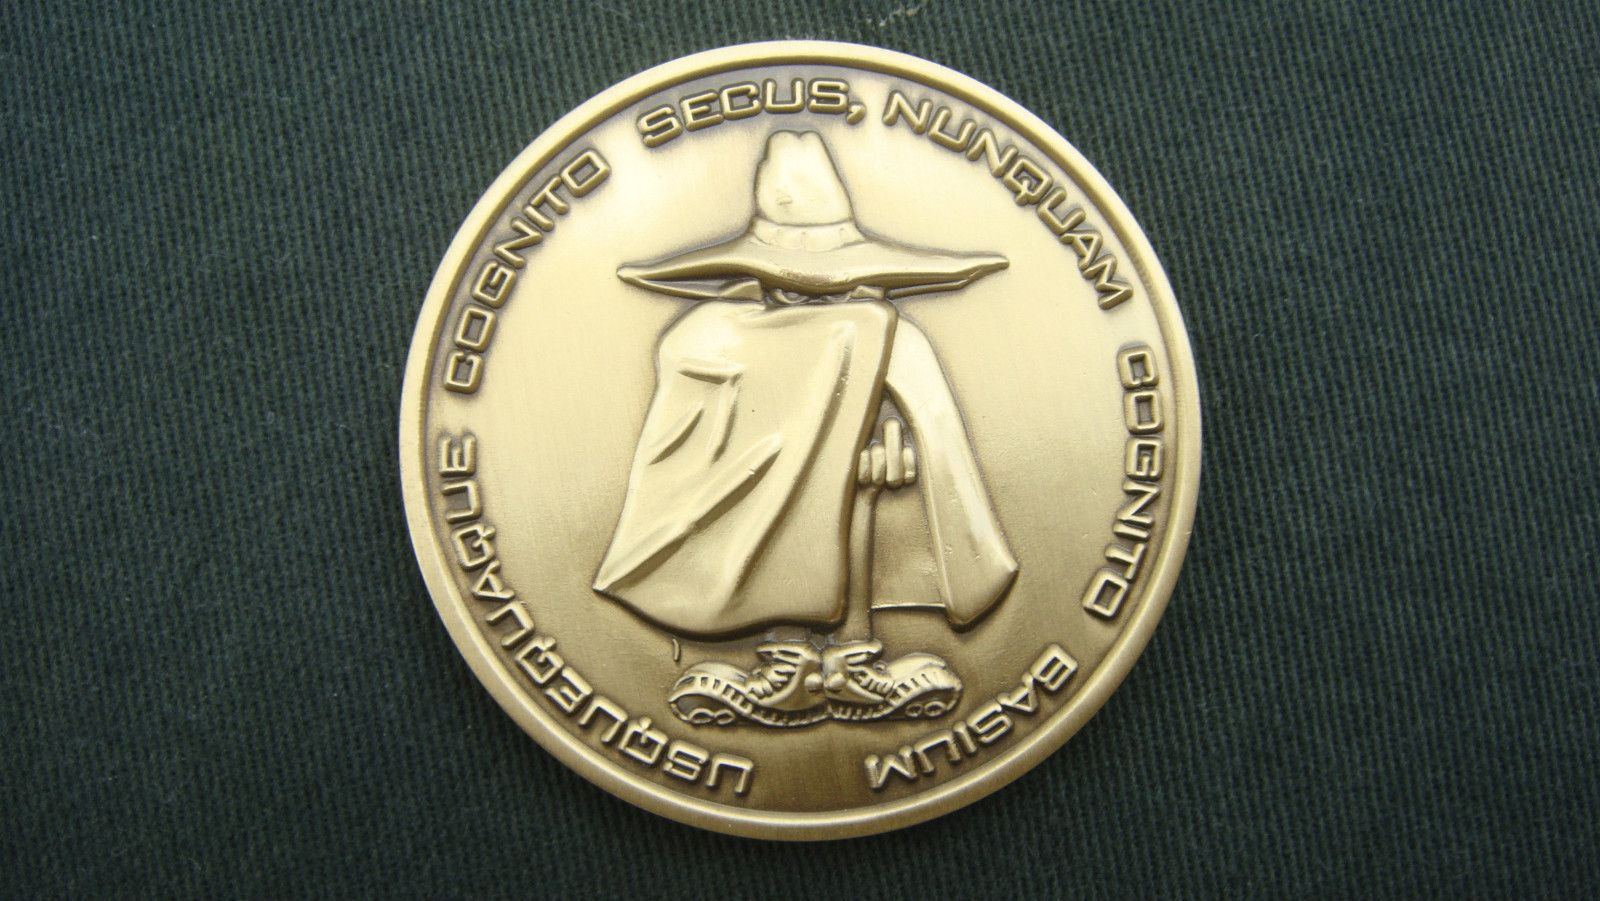 CIA ISSUE PROTECTIVE INTELLIGENCE OPERATIONS/SPEC OPS CHALLENGE COIN